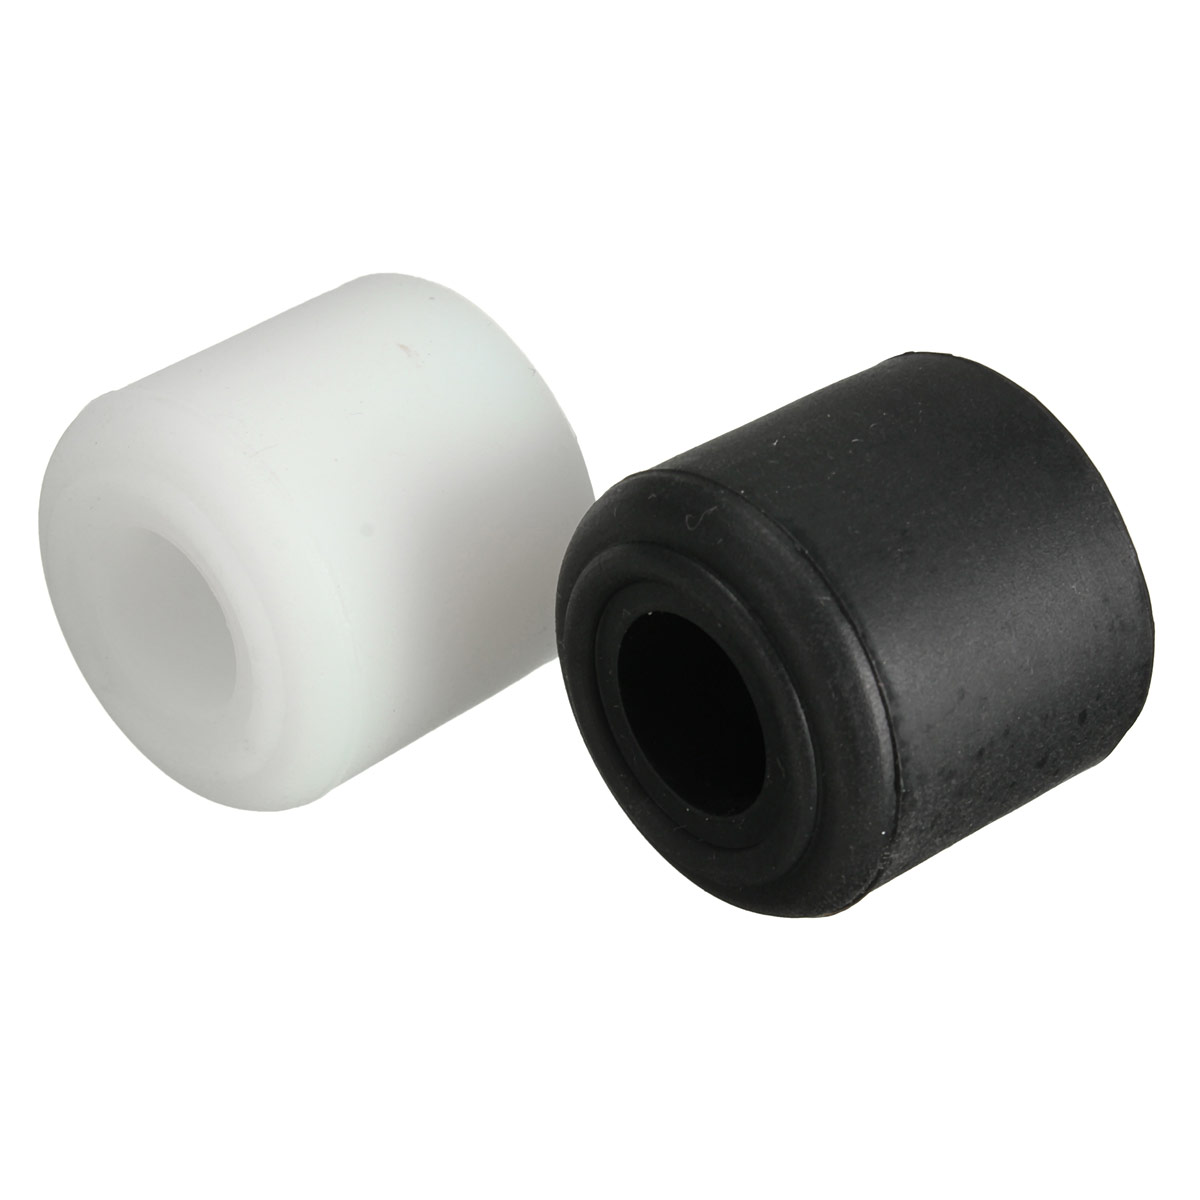 28mm rubber door stop stopper cylinder jam wedge door floor holder black white ebay - Door stoppers rubber ...